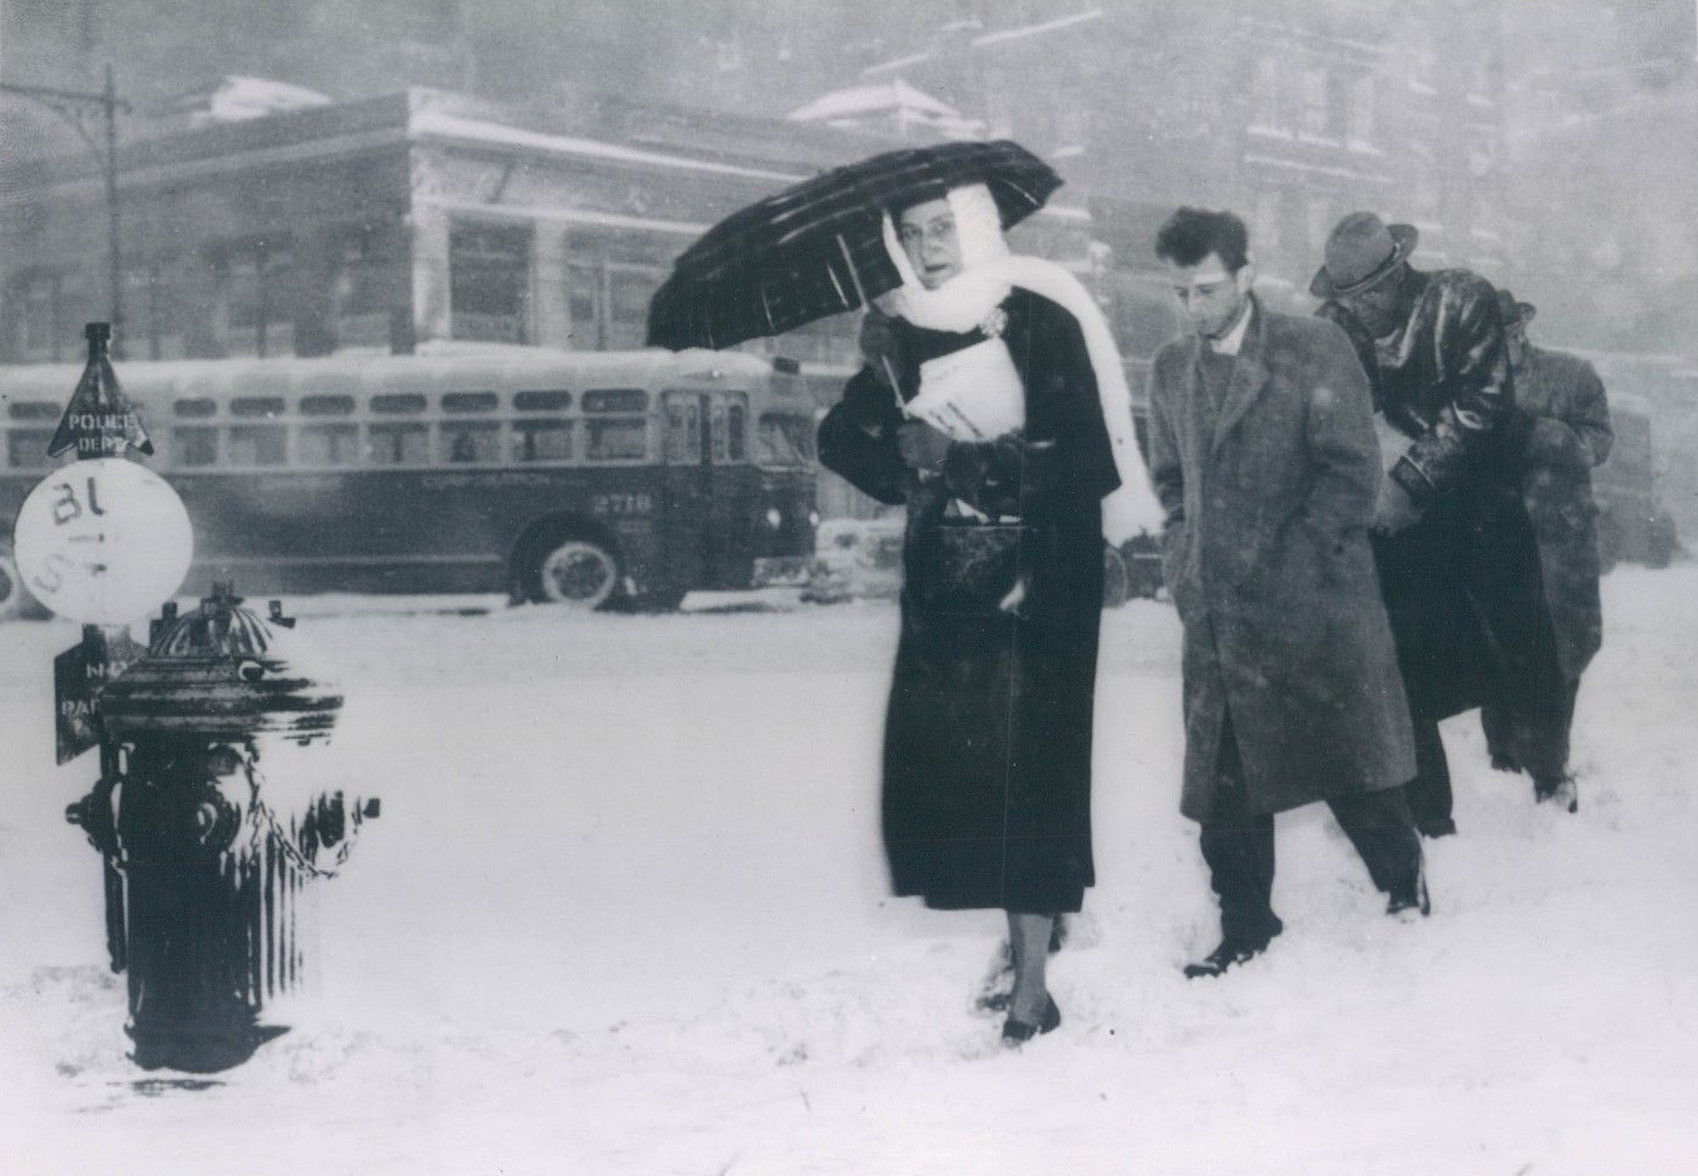 We've Seen This Before, Late March New York City Snowstorm Shuts Down The City - 1956